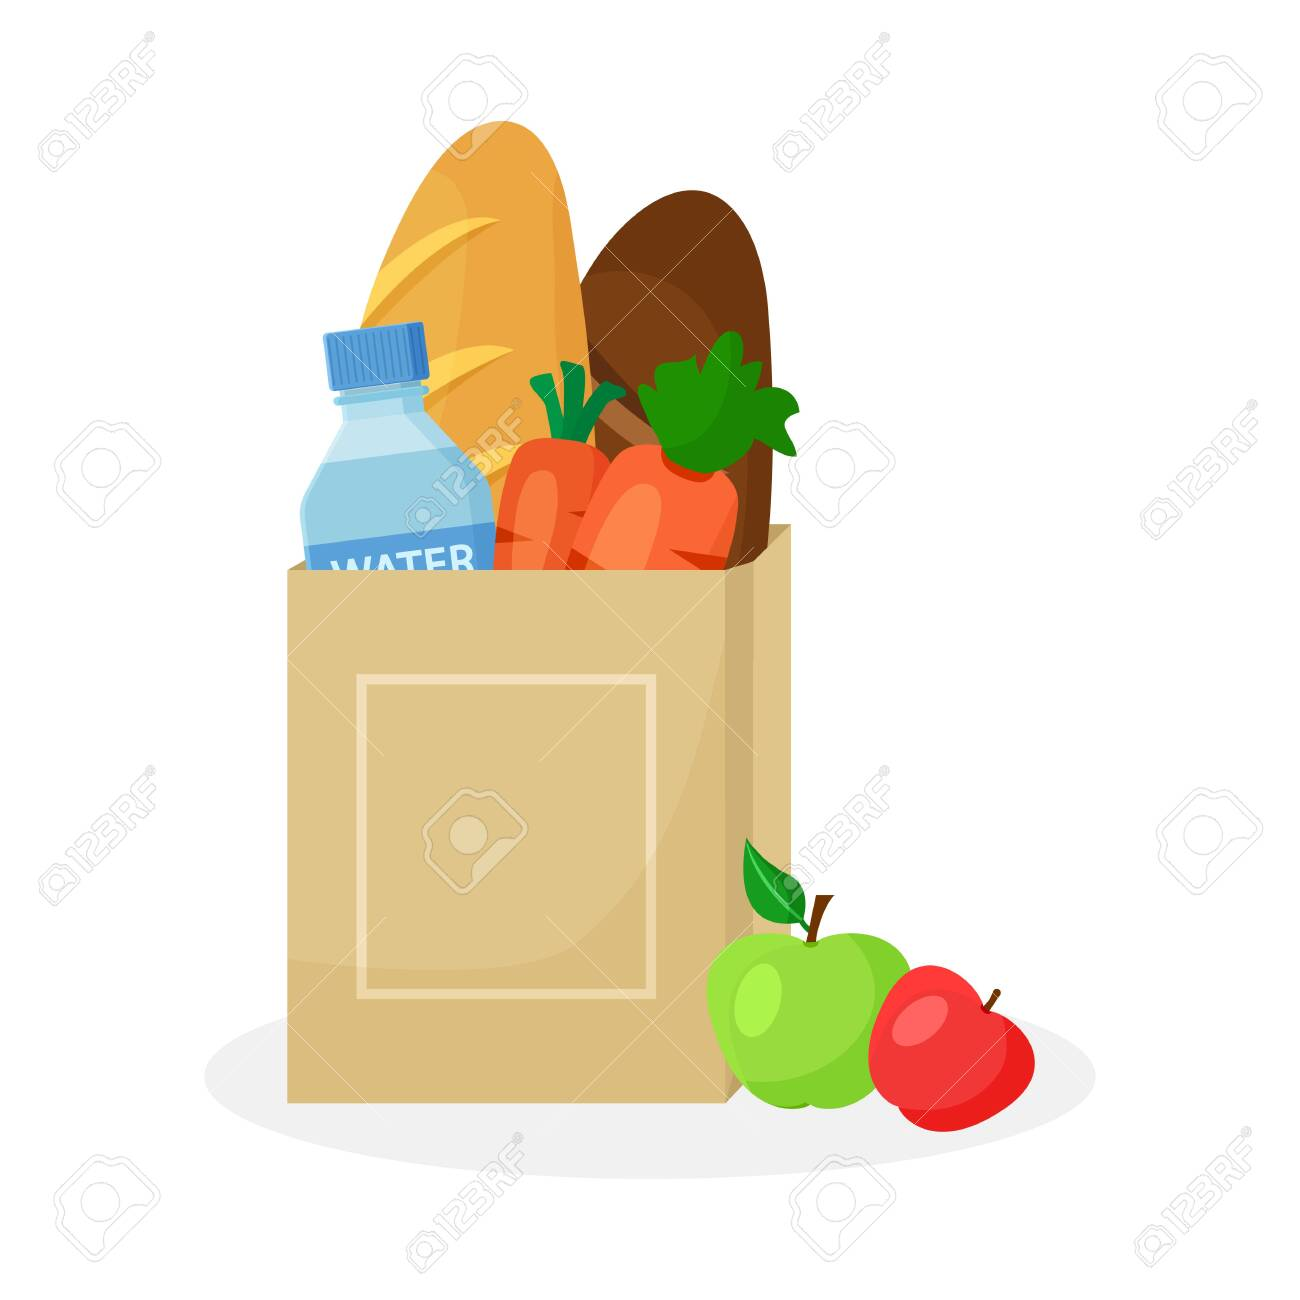 Paper package with products. Wheat and rye bread loaf, carrots, bottle of water and apples. Vector illustration - 129709425